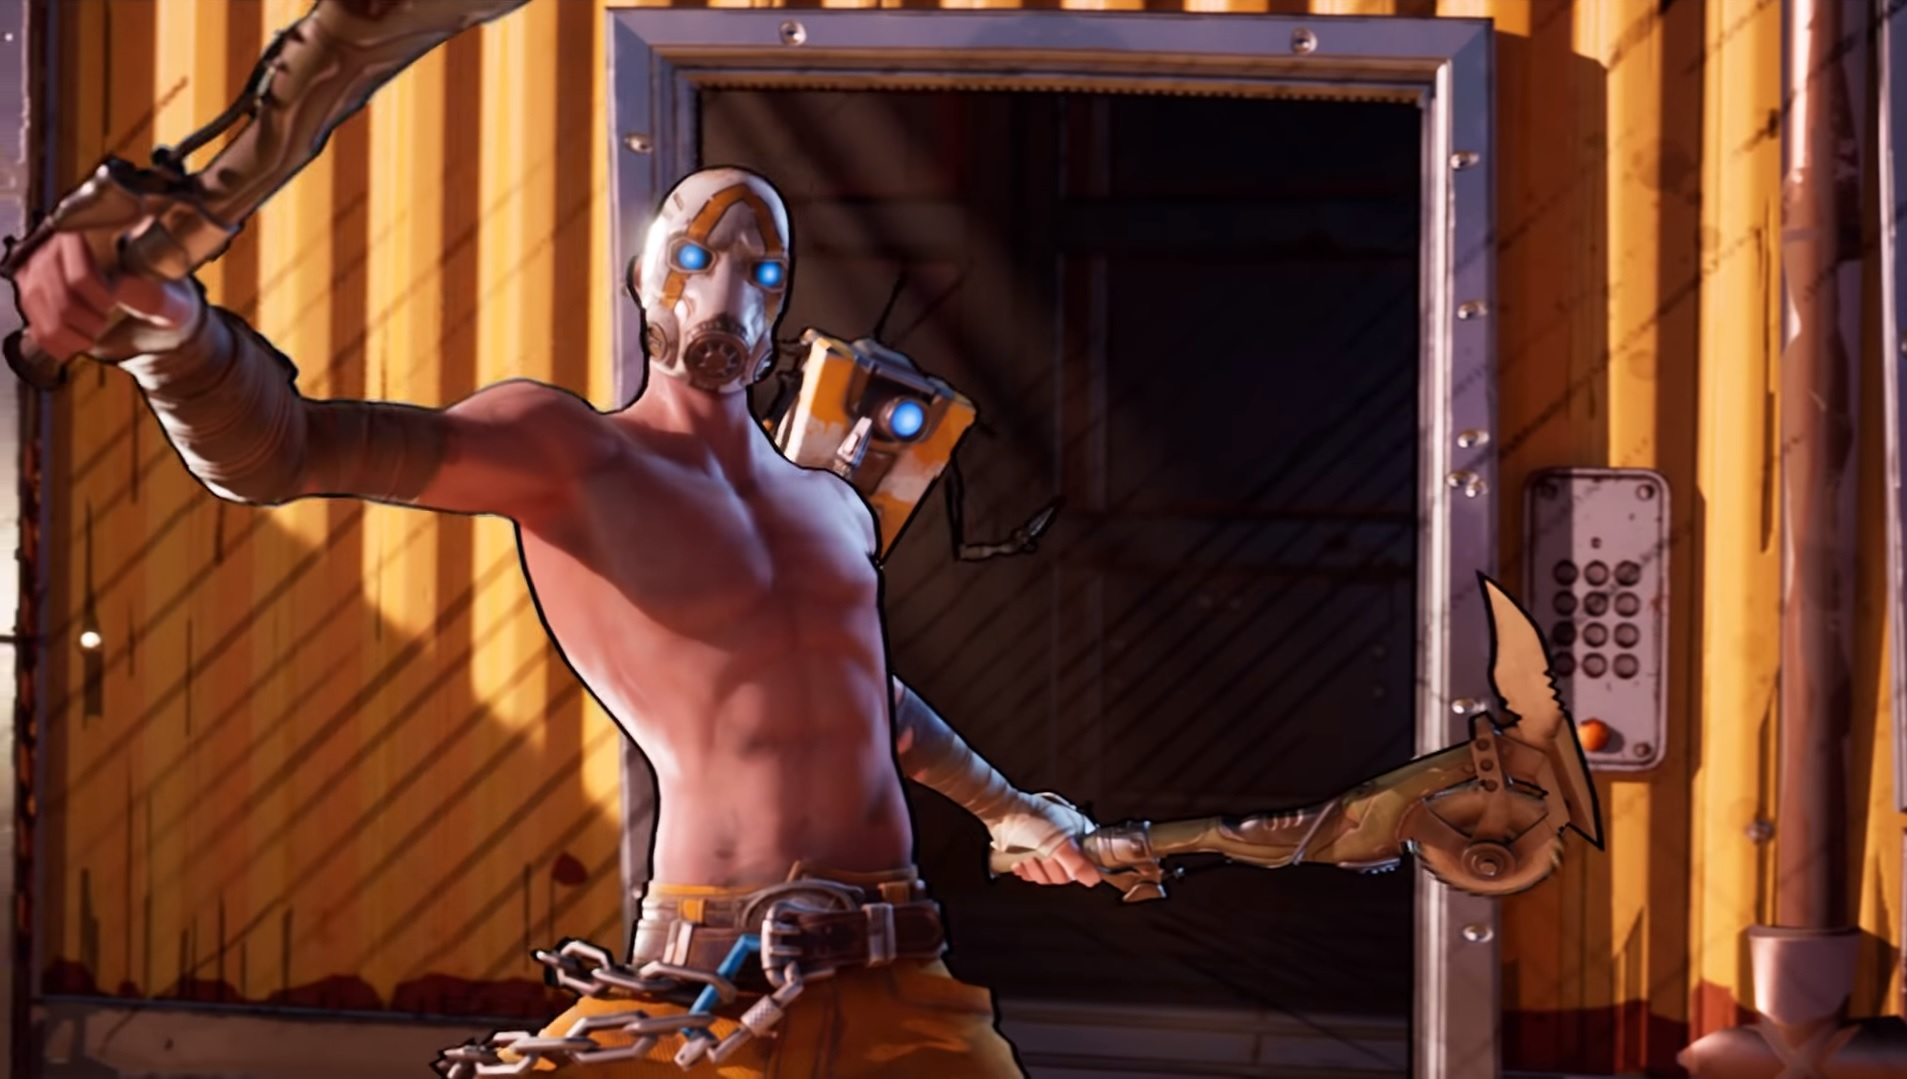 Fortnite and Borderlands collide in the latest update | PC Gamer